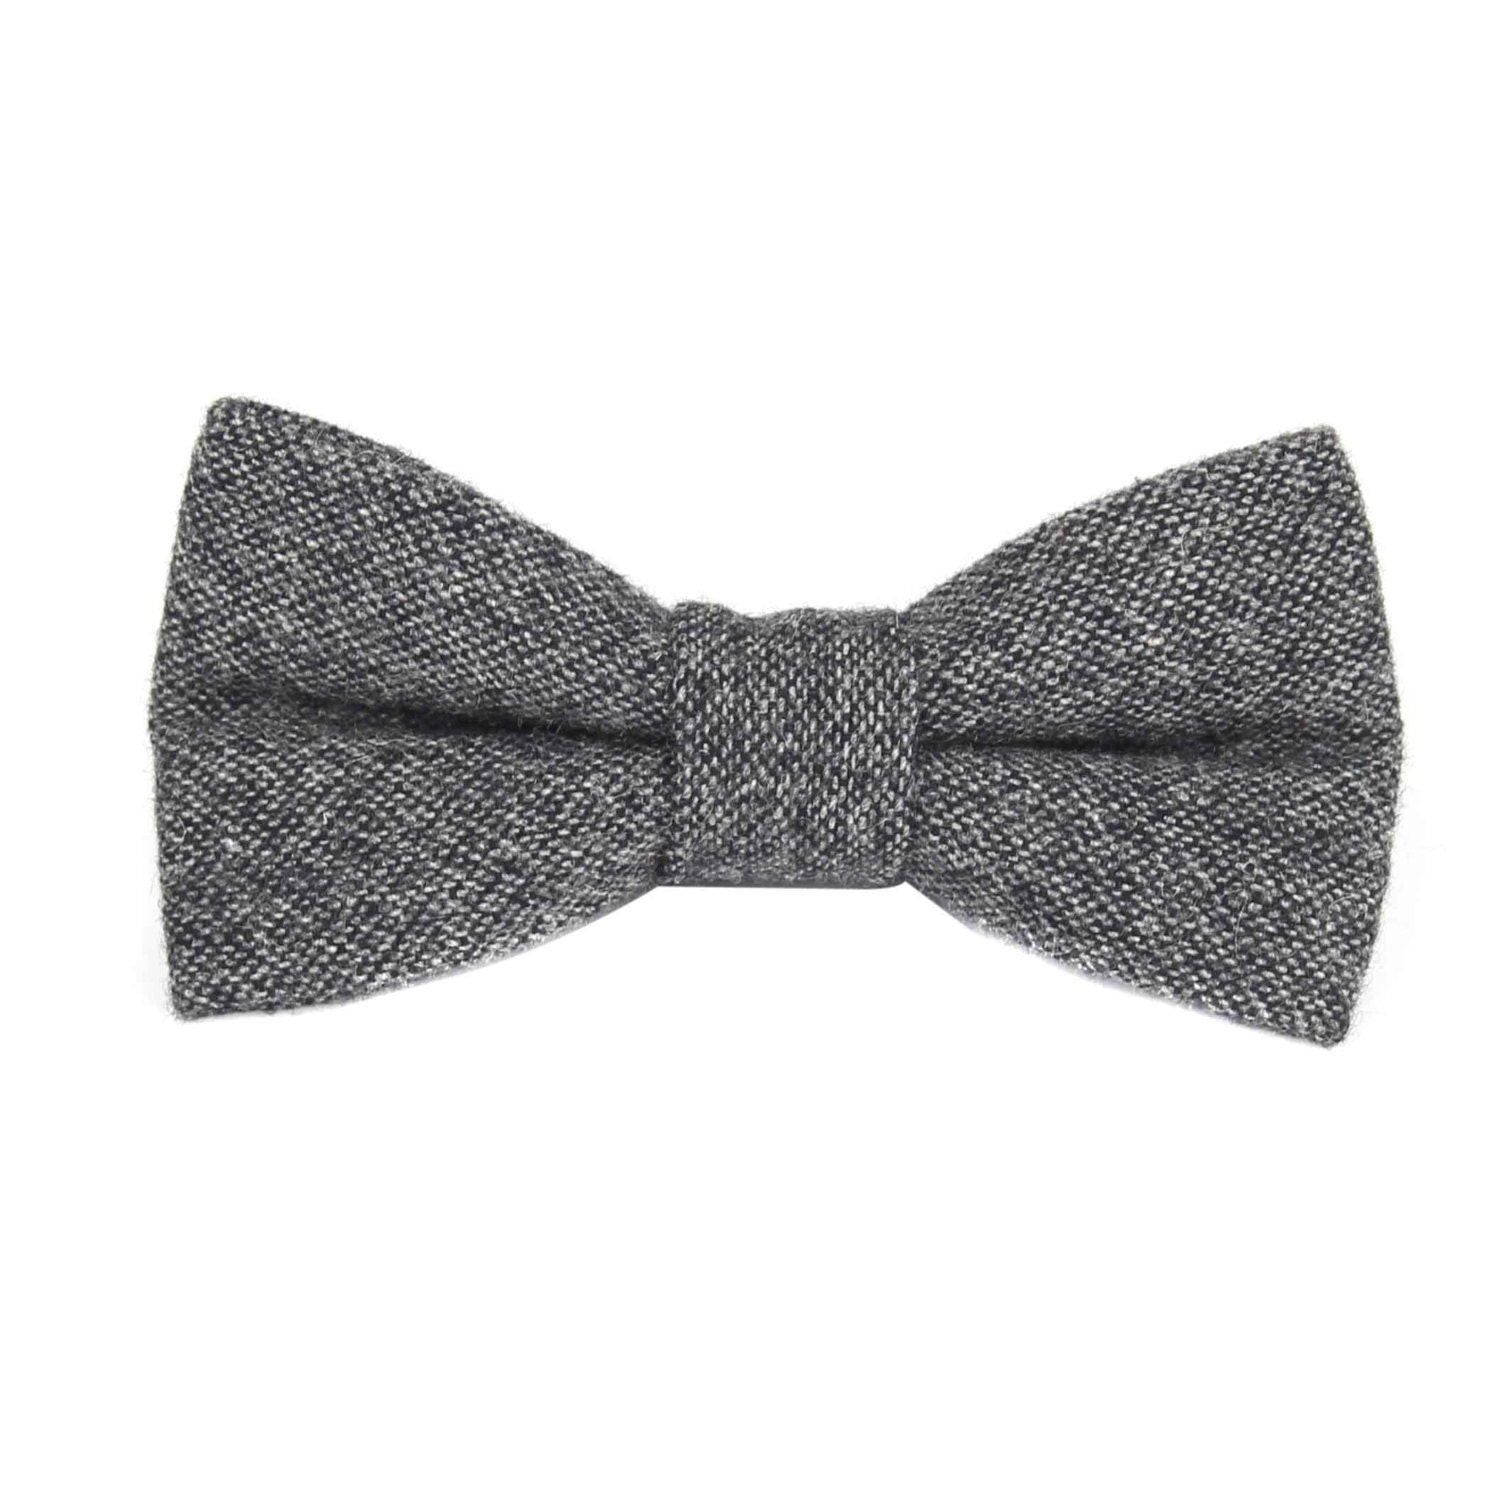 You searched for: grey bow tie! Etsy is the home to thousands of handmade, vintage, and one-of-a-kind products and gifts related to your search. No matter what you're looking for or where you are in the world, our global marketplace of sellers can help you find unique and affordable options. Let's get started!